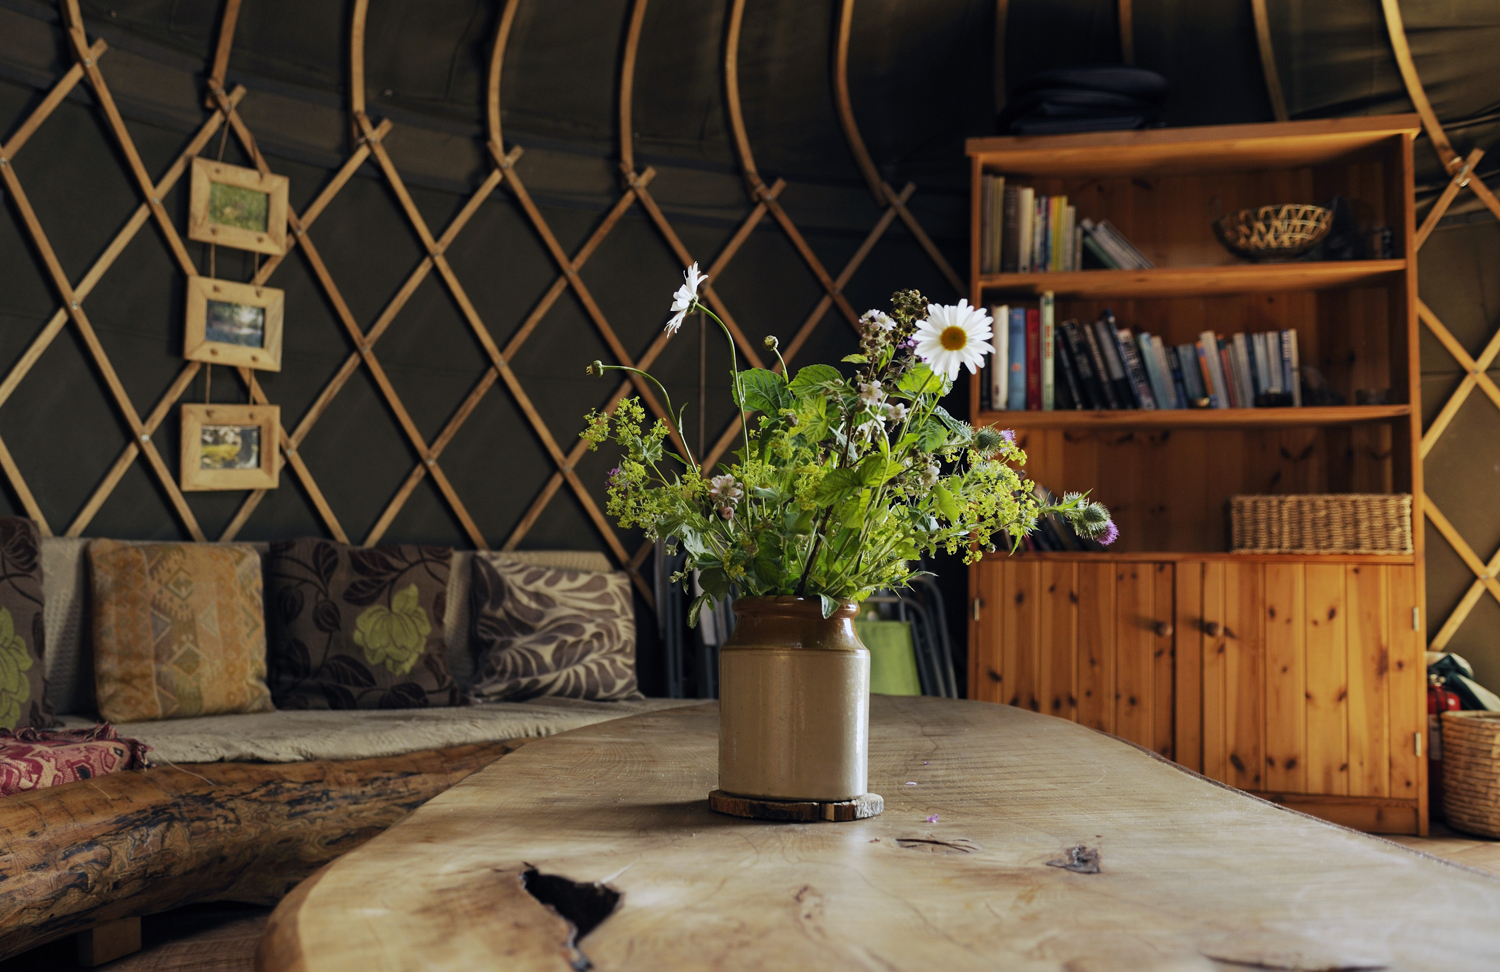 Glamping in Dorset - Luxury yurt interior